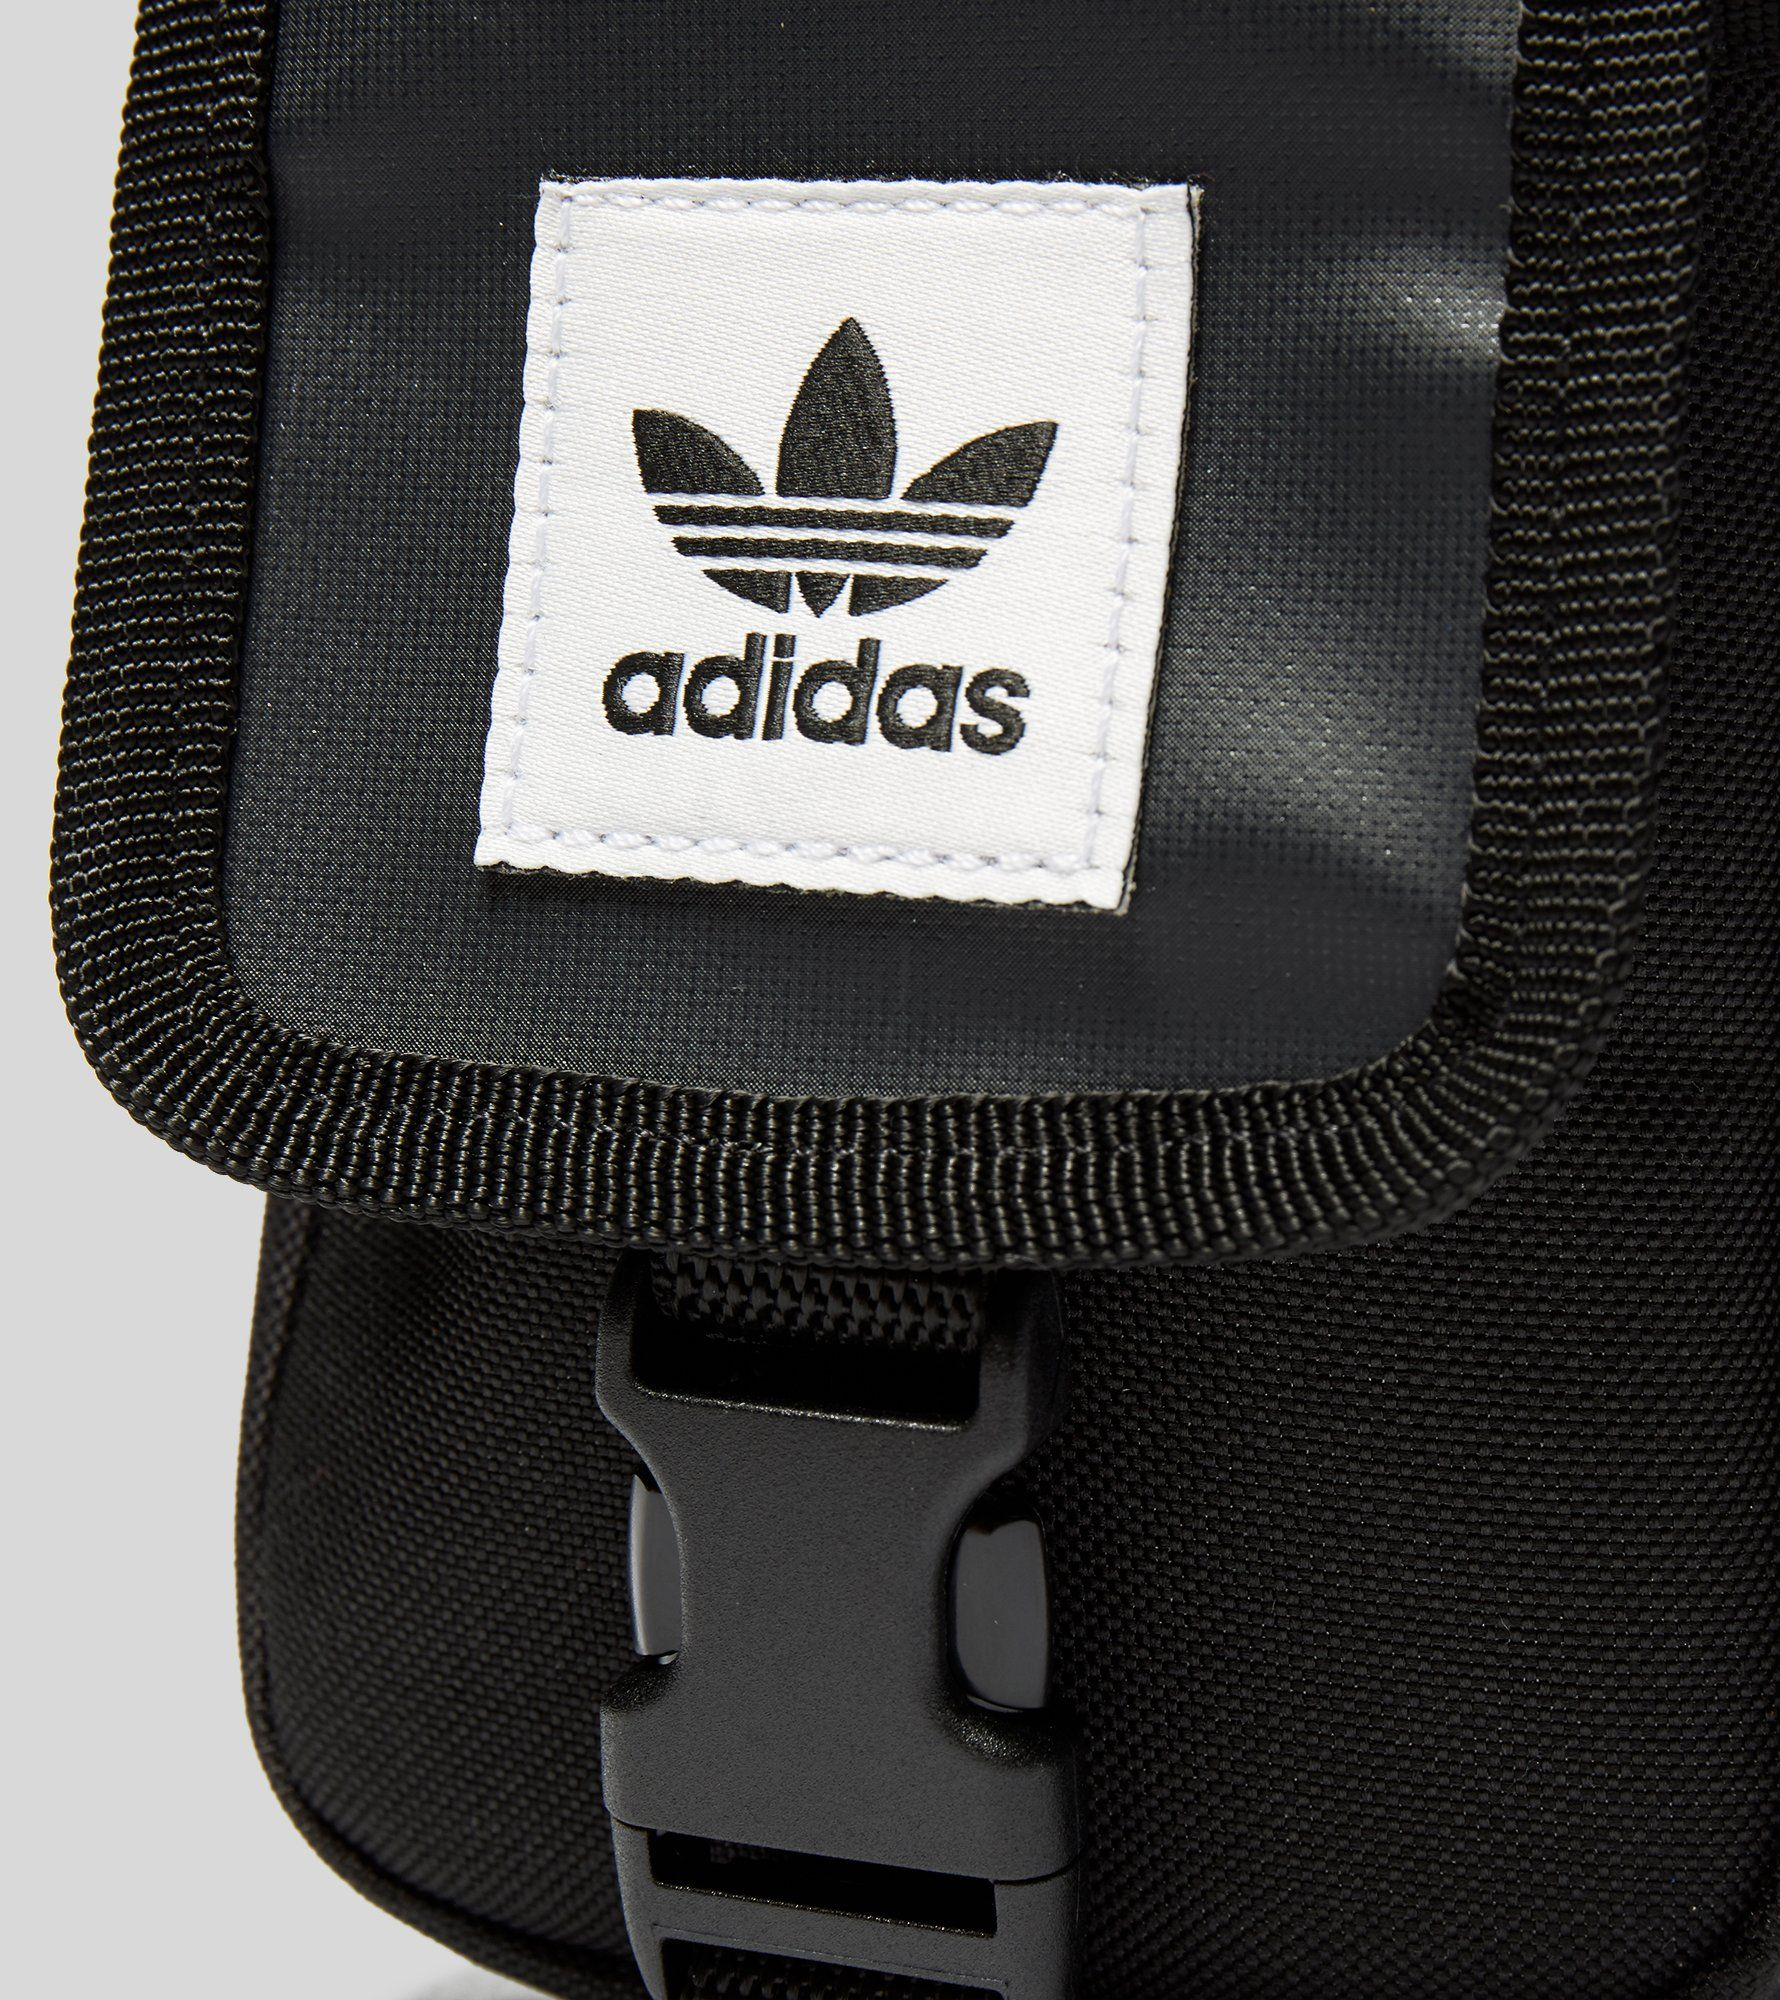 adidas Originals Map Bag